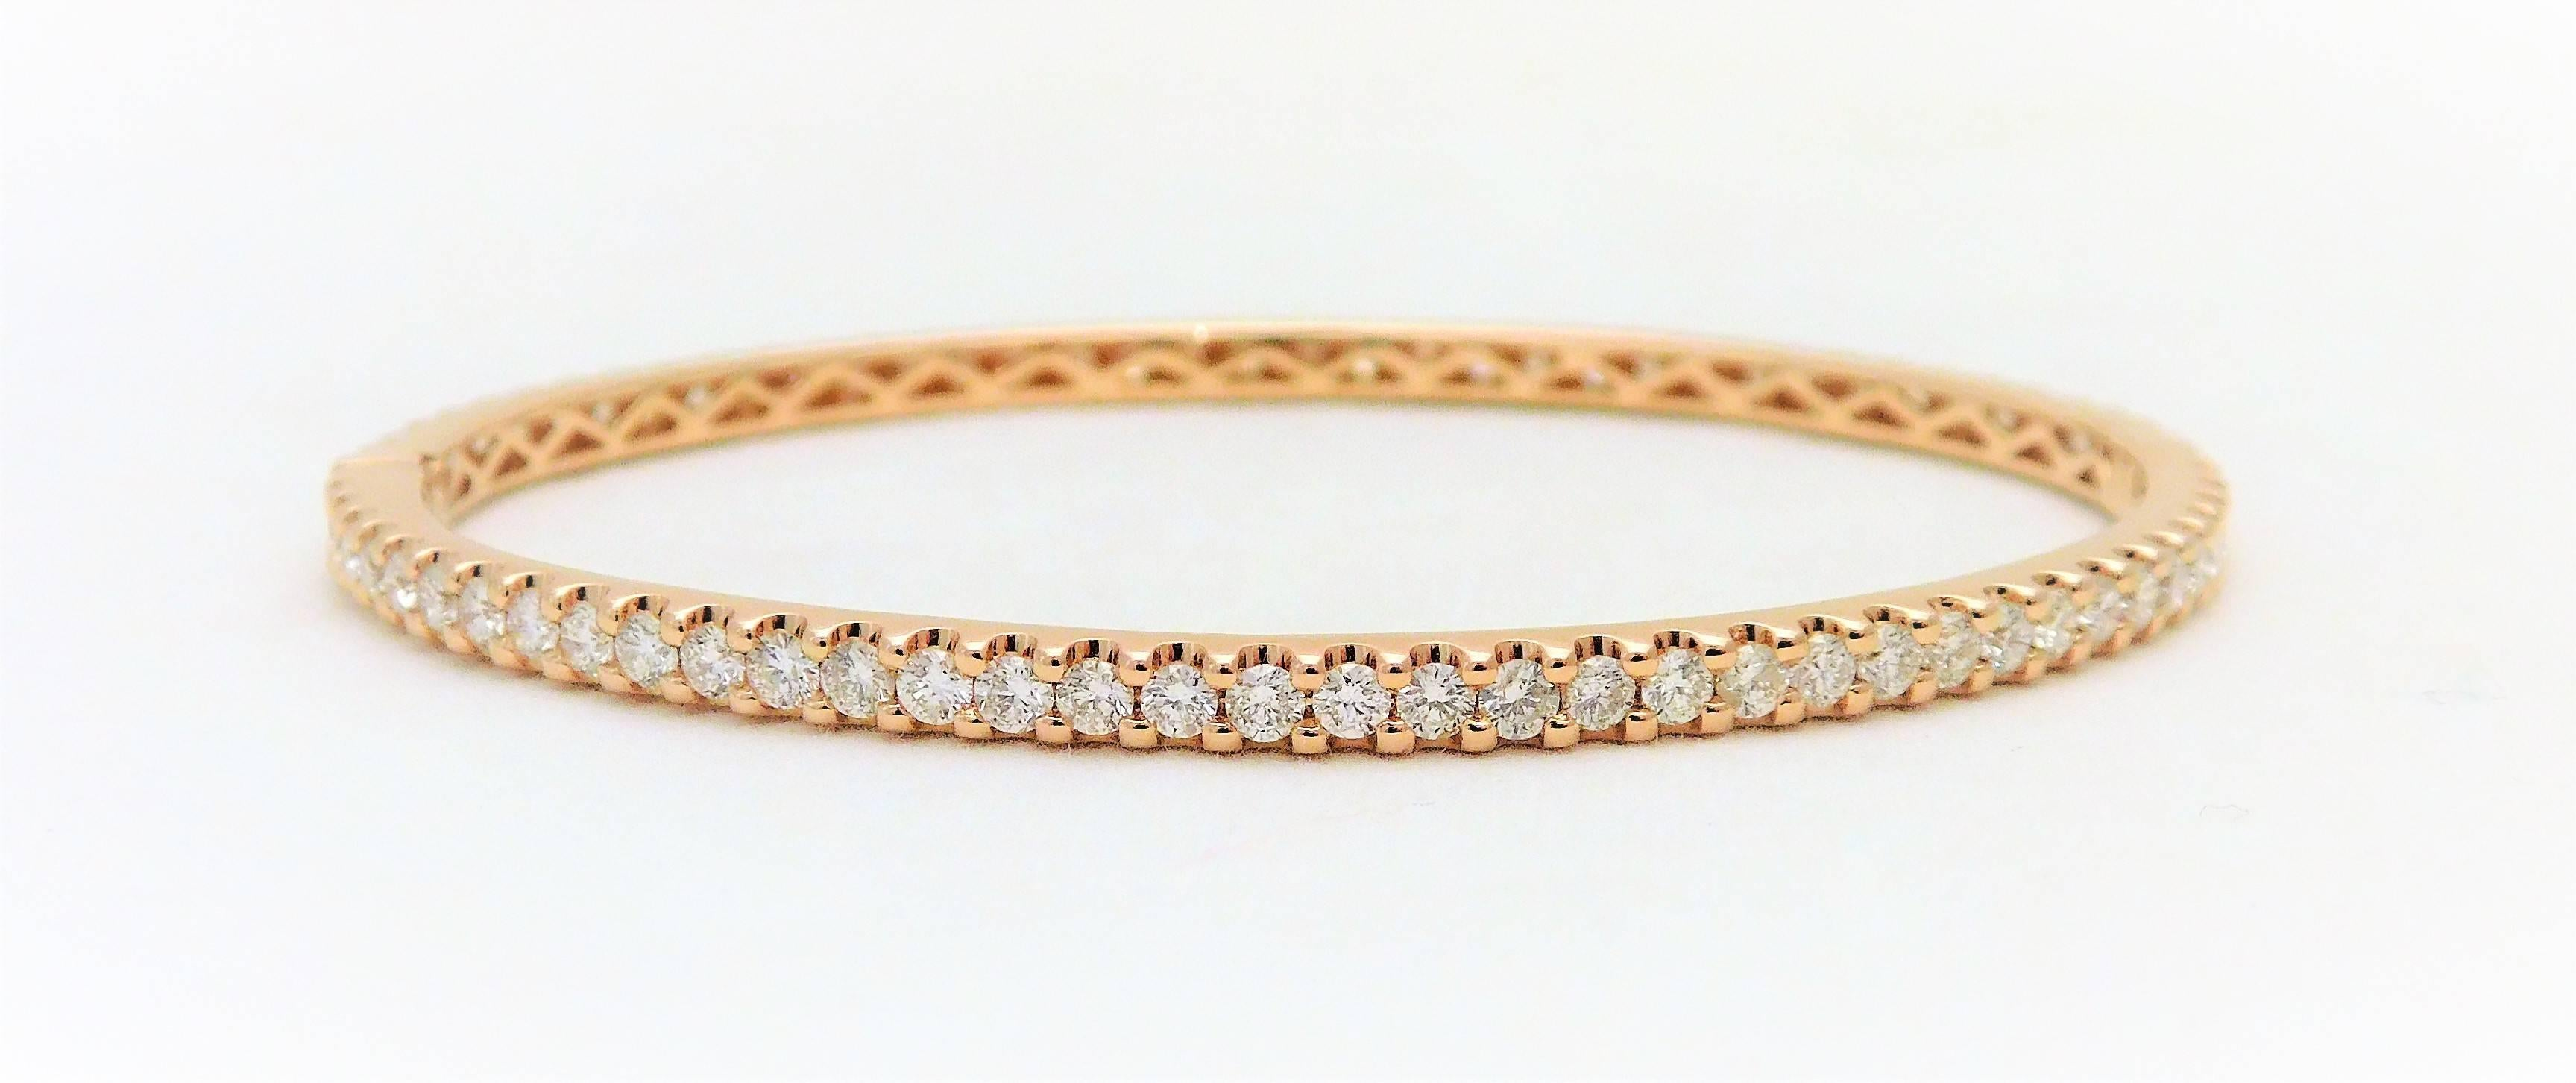 bracelet nicole diamond eternity bangle one alb rose row